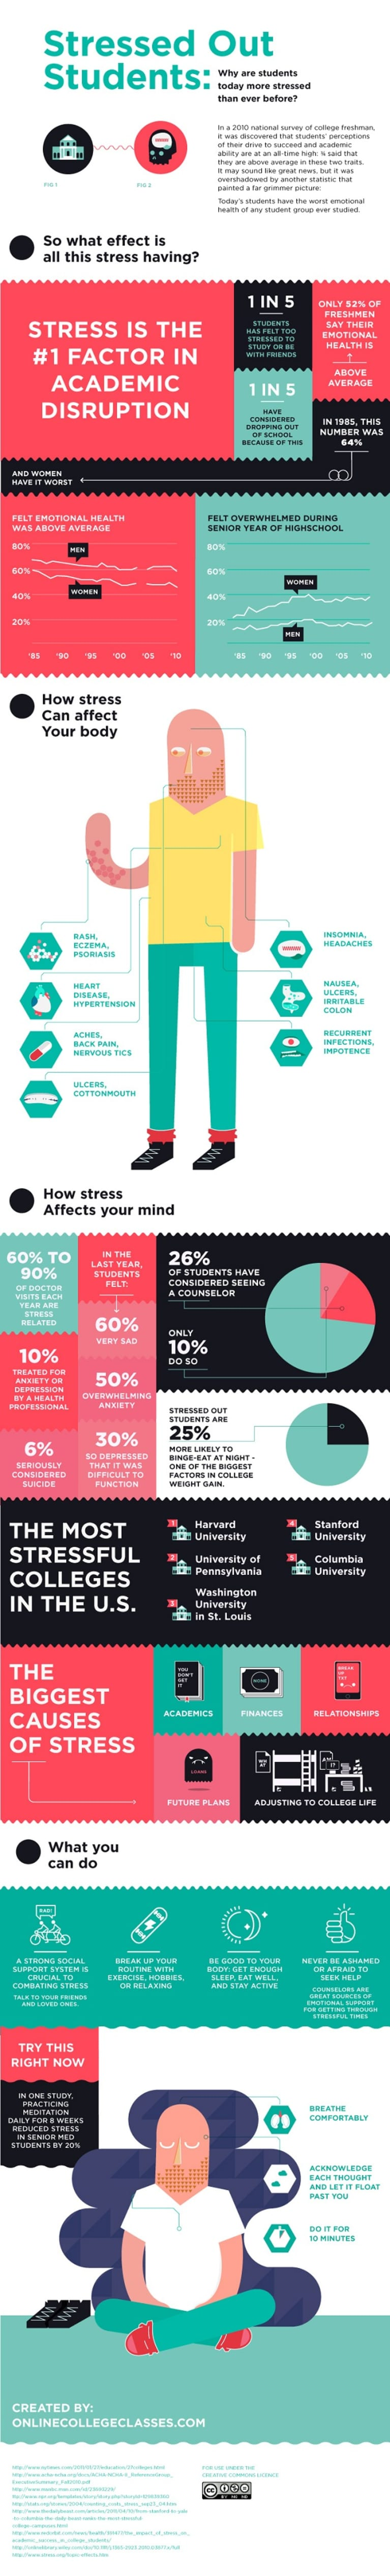 Stressed-Out Students: How Stress Affects Your Mind & Body (Infographic)